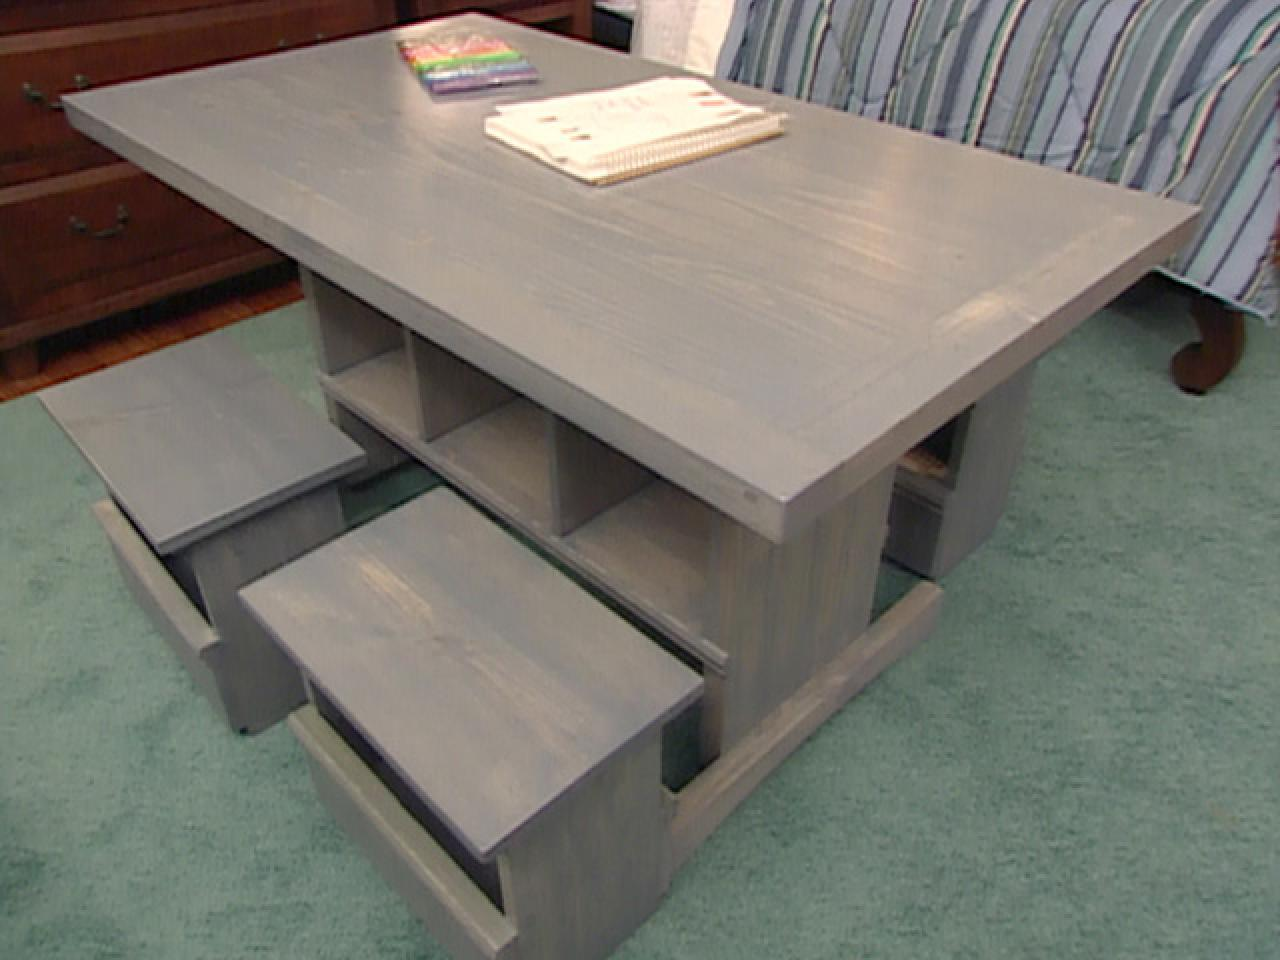 Stupendous How To Build Child Sized Table And Stools Hgtv Interior Design Ideas Philsoteloinfo